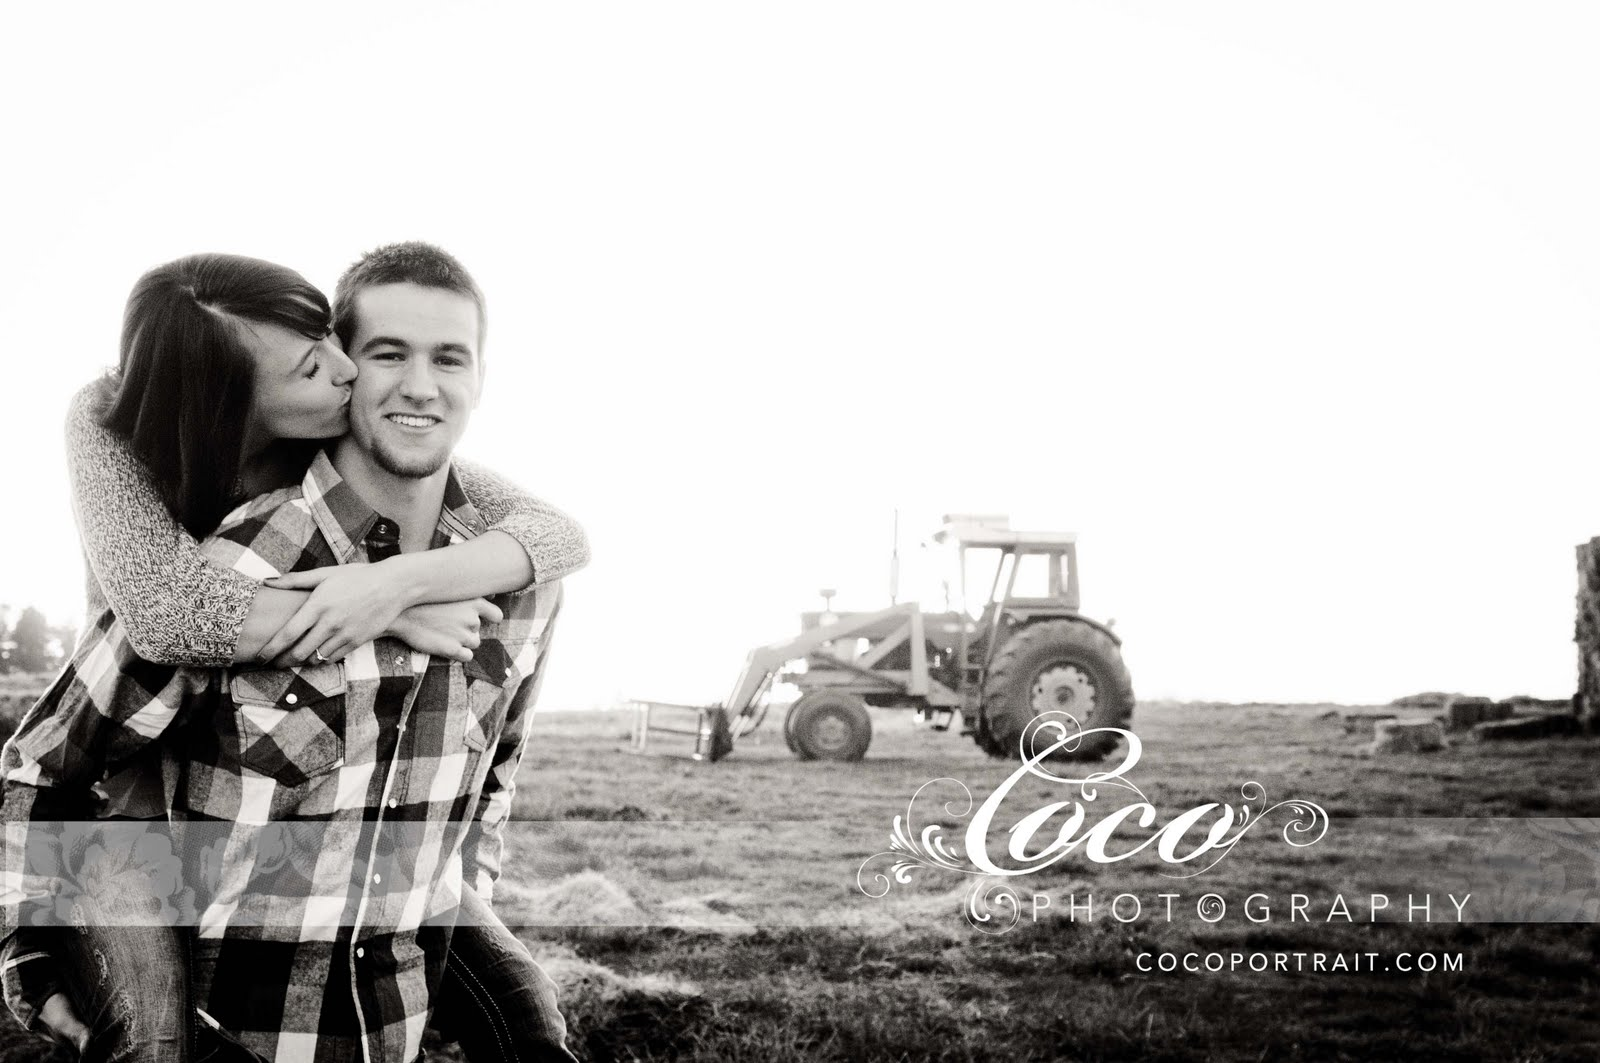 Coco Photography, Spokane wedding blog